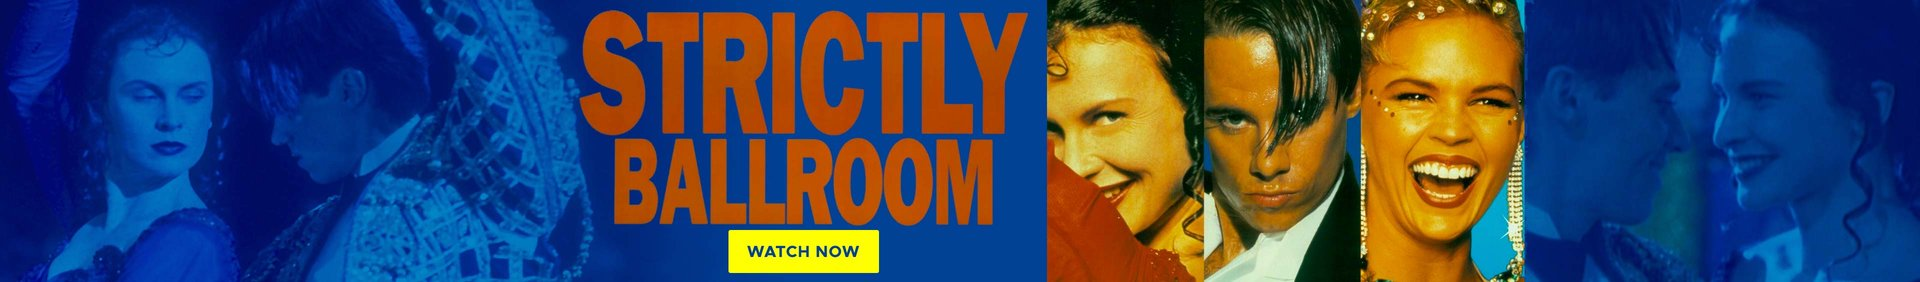 Watch Strictly Ballroom on Kanopy